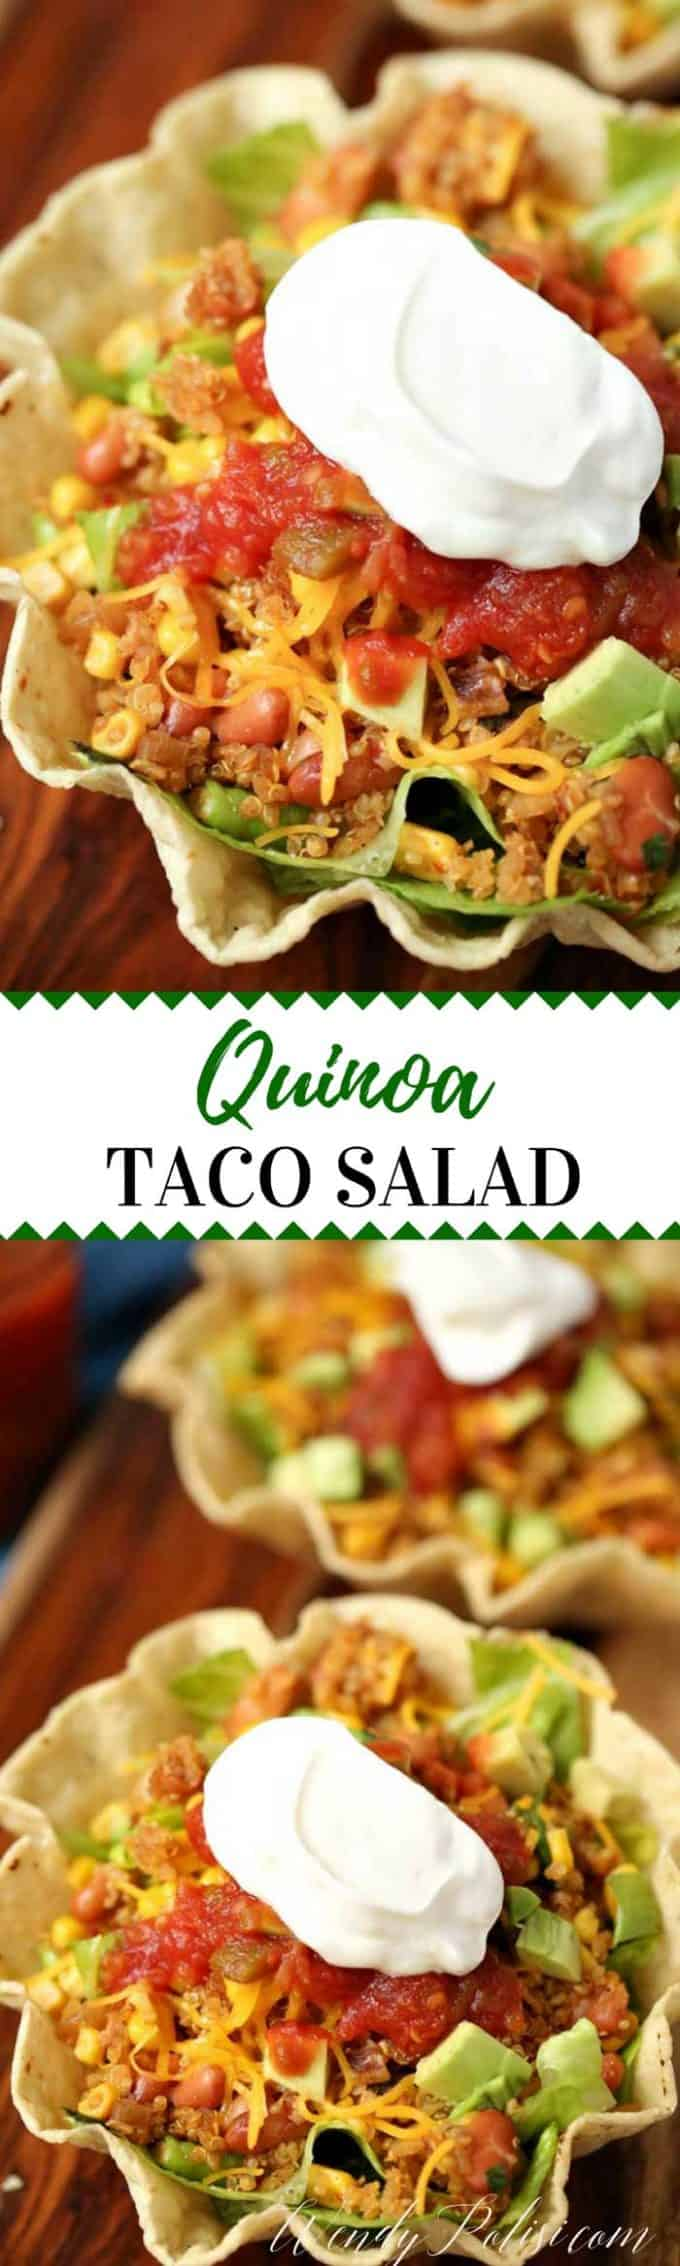 This Quinoa Taco Salad Bowl is a delicious and nutritious vegetarian meal that even meat eaters will love!  The perfect weeknight dinner.